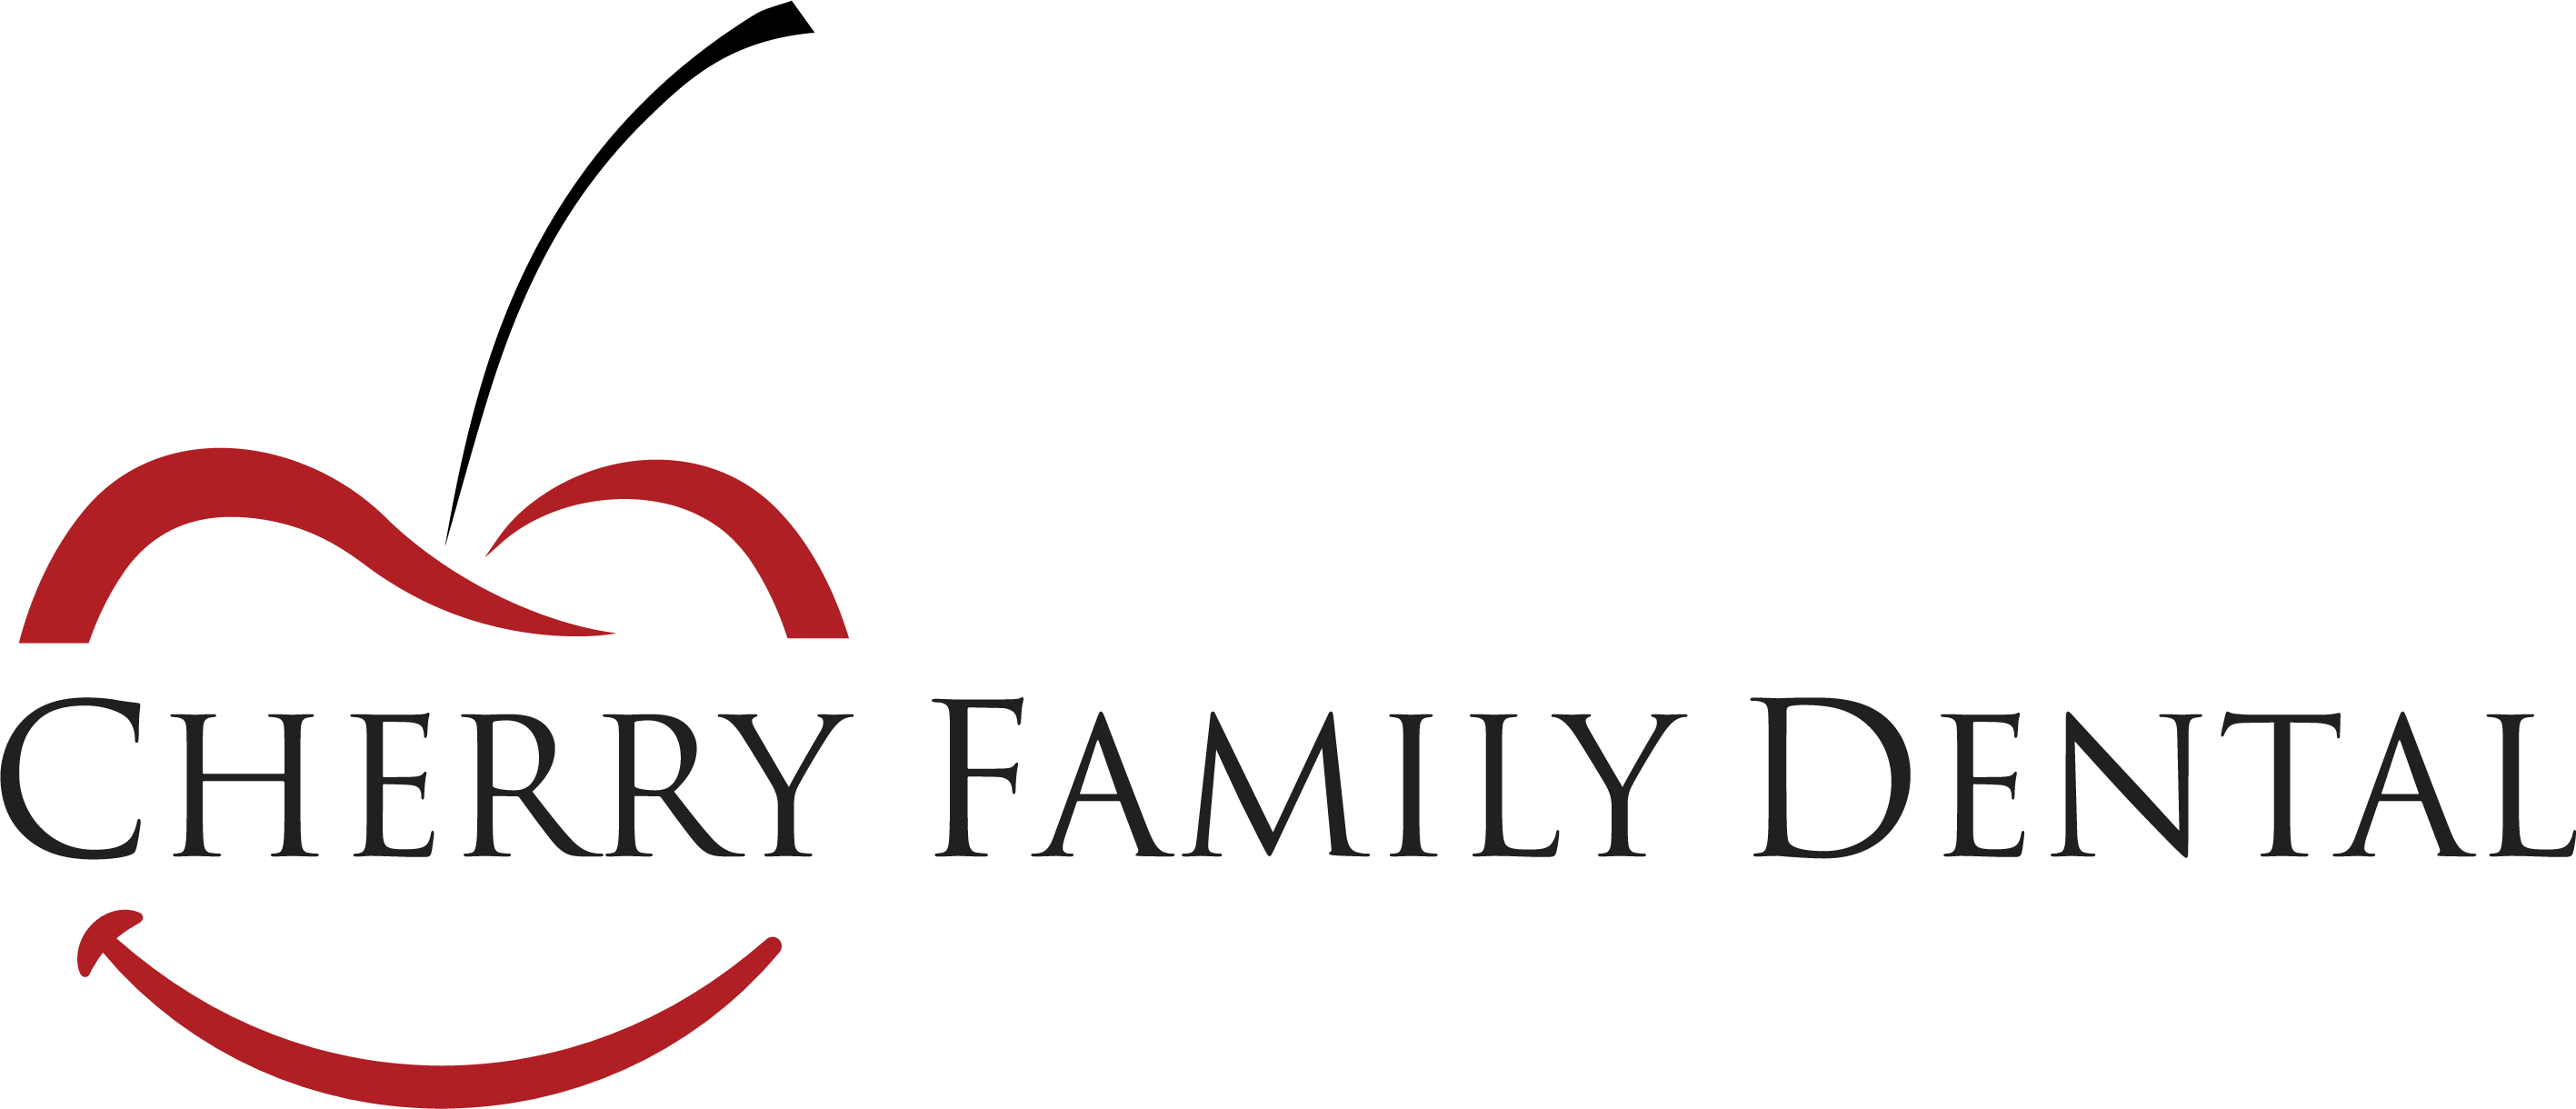 Simple and Clean Logo for Family Dental office